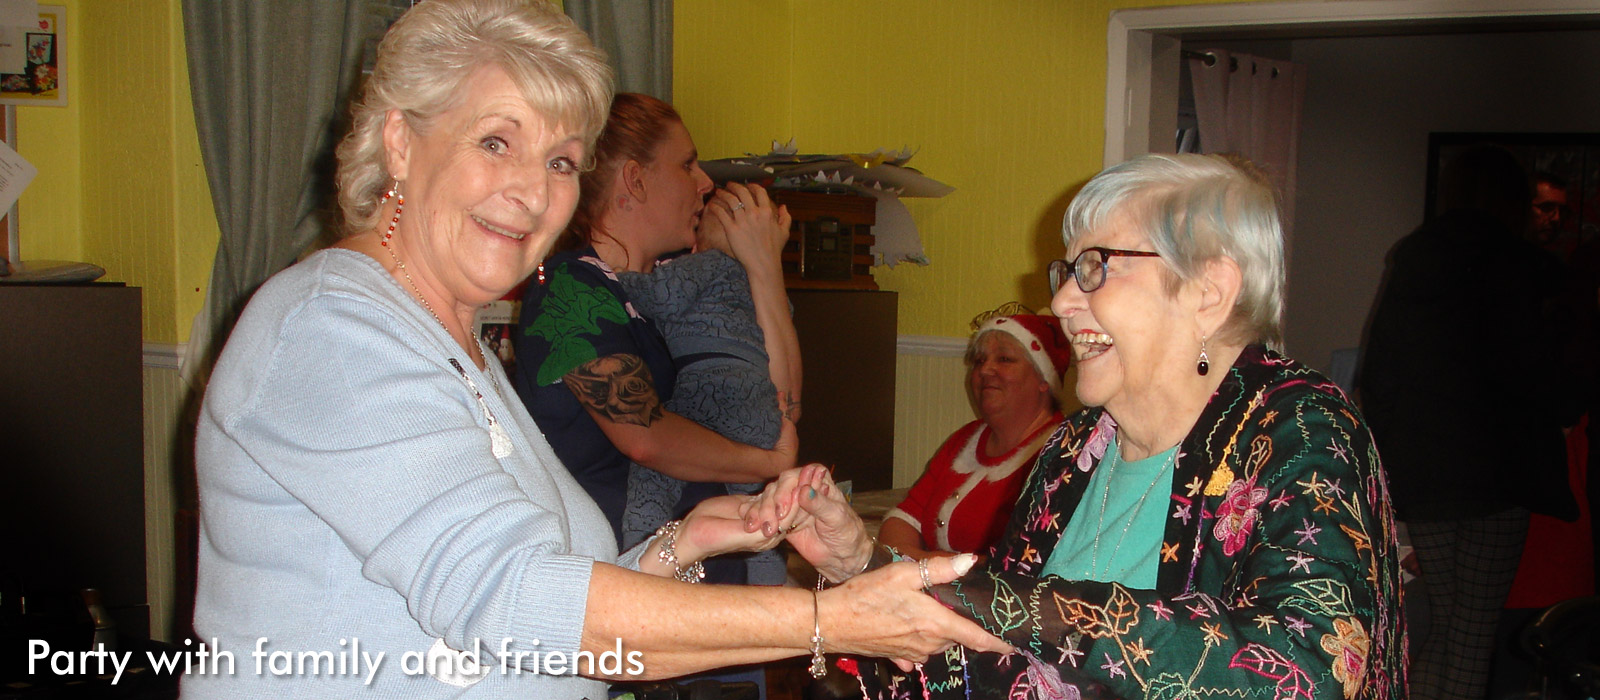 Group activities also include dancing and parties with family & friends